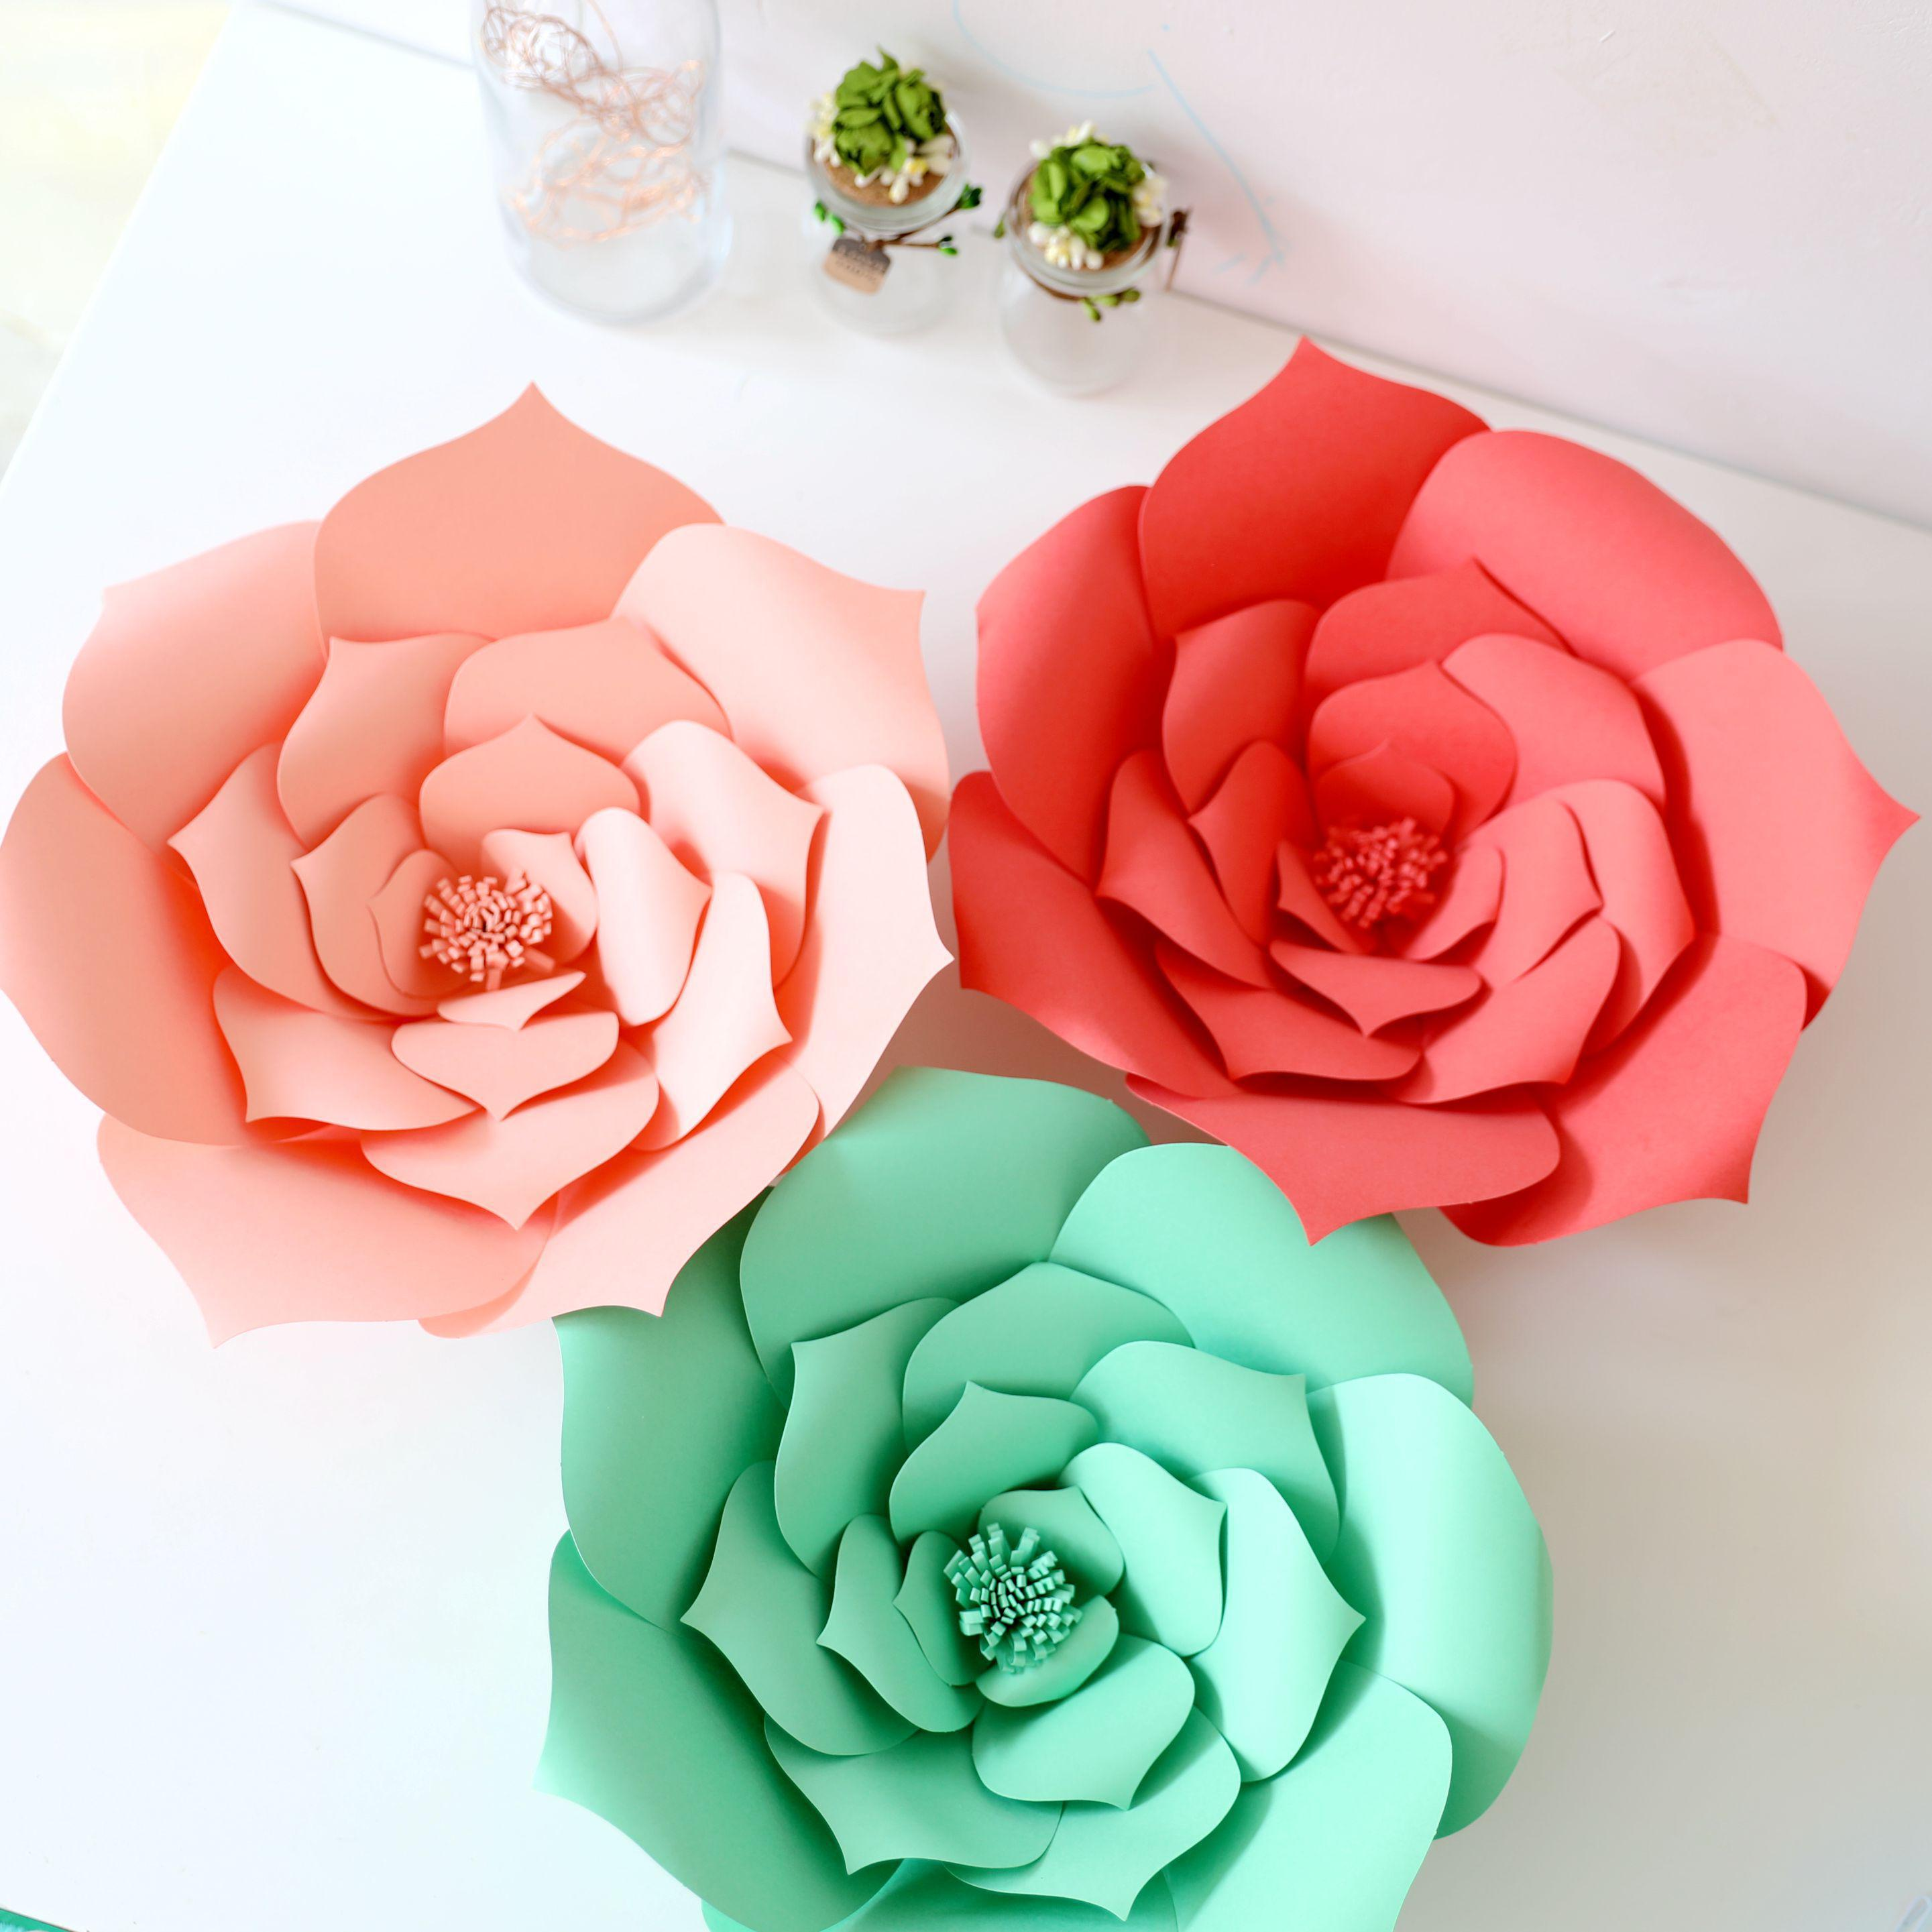 Compare prices on paper flowers for backdrop online shoppingbuy 2 pieces half made giant paper flowers for showcase wedding backdrops props flores artificiais para decora dhlflorist Image collections